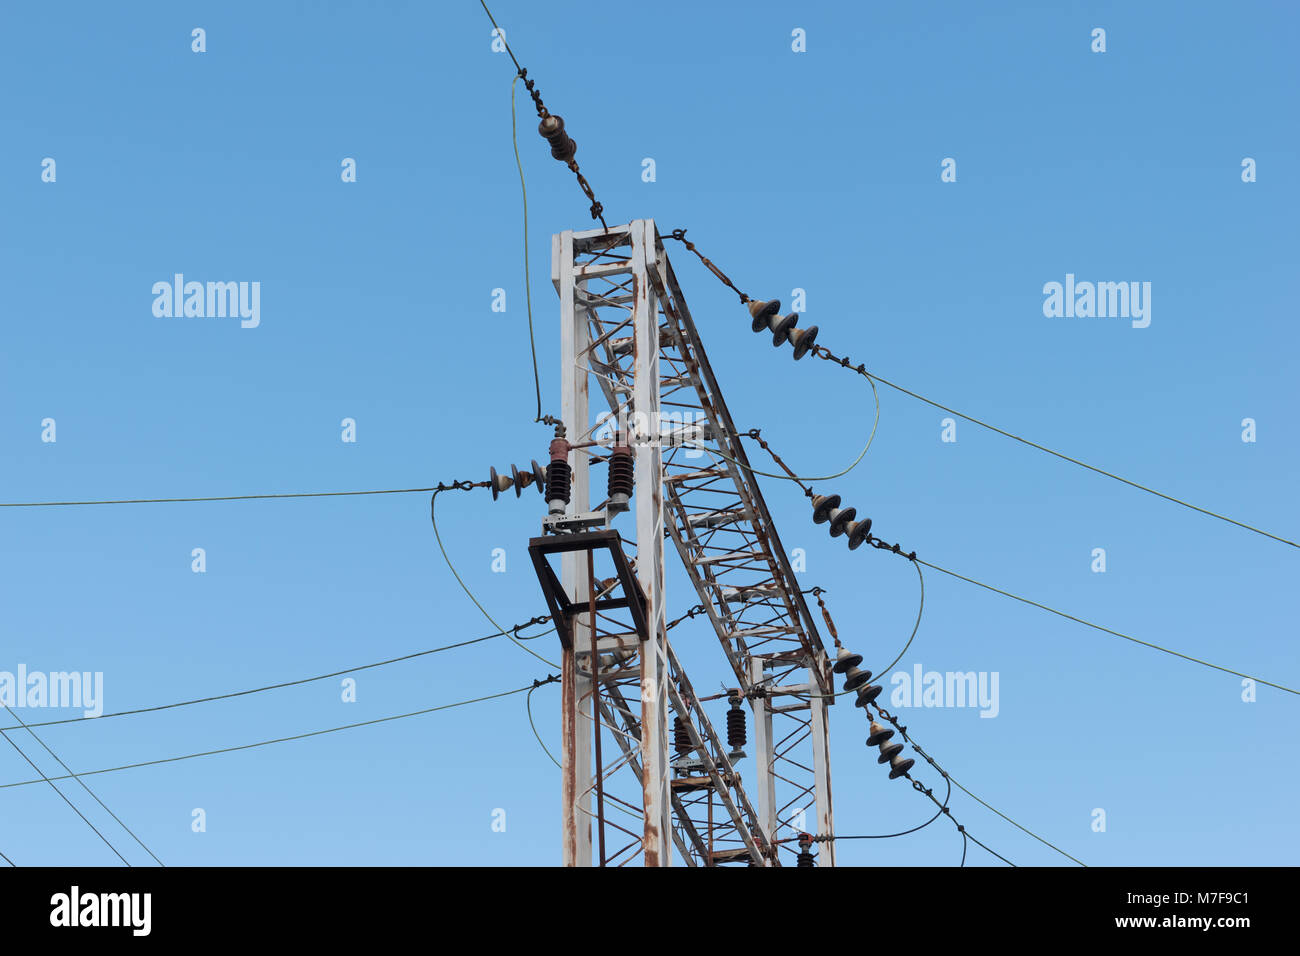 Train or railway power line support. Railway power lines with high voltage electricity on metal poles against blue - Stock Image